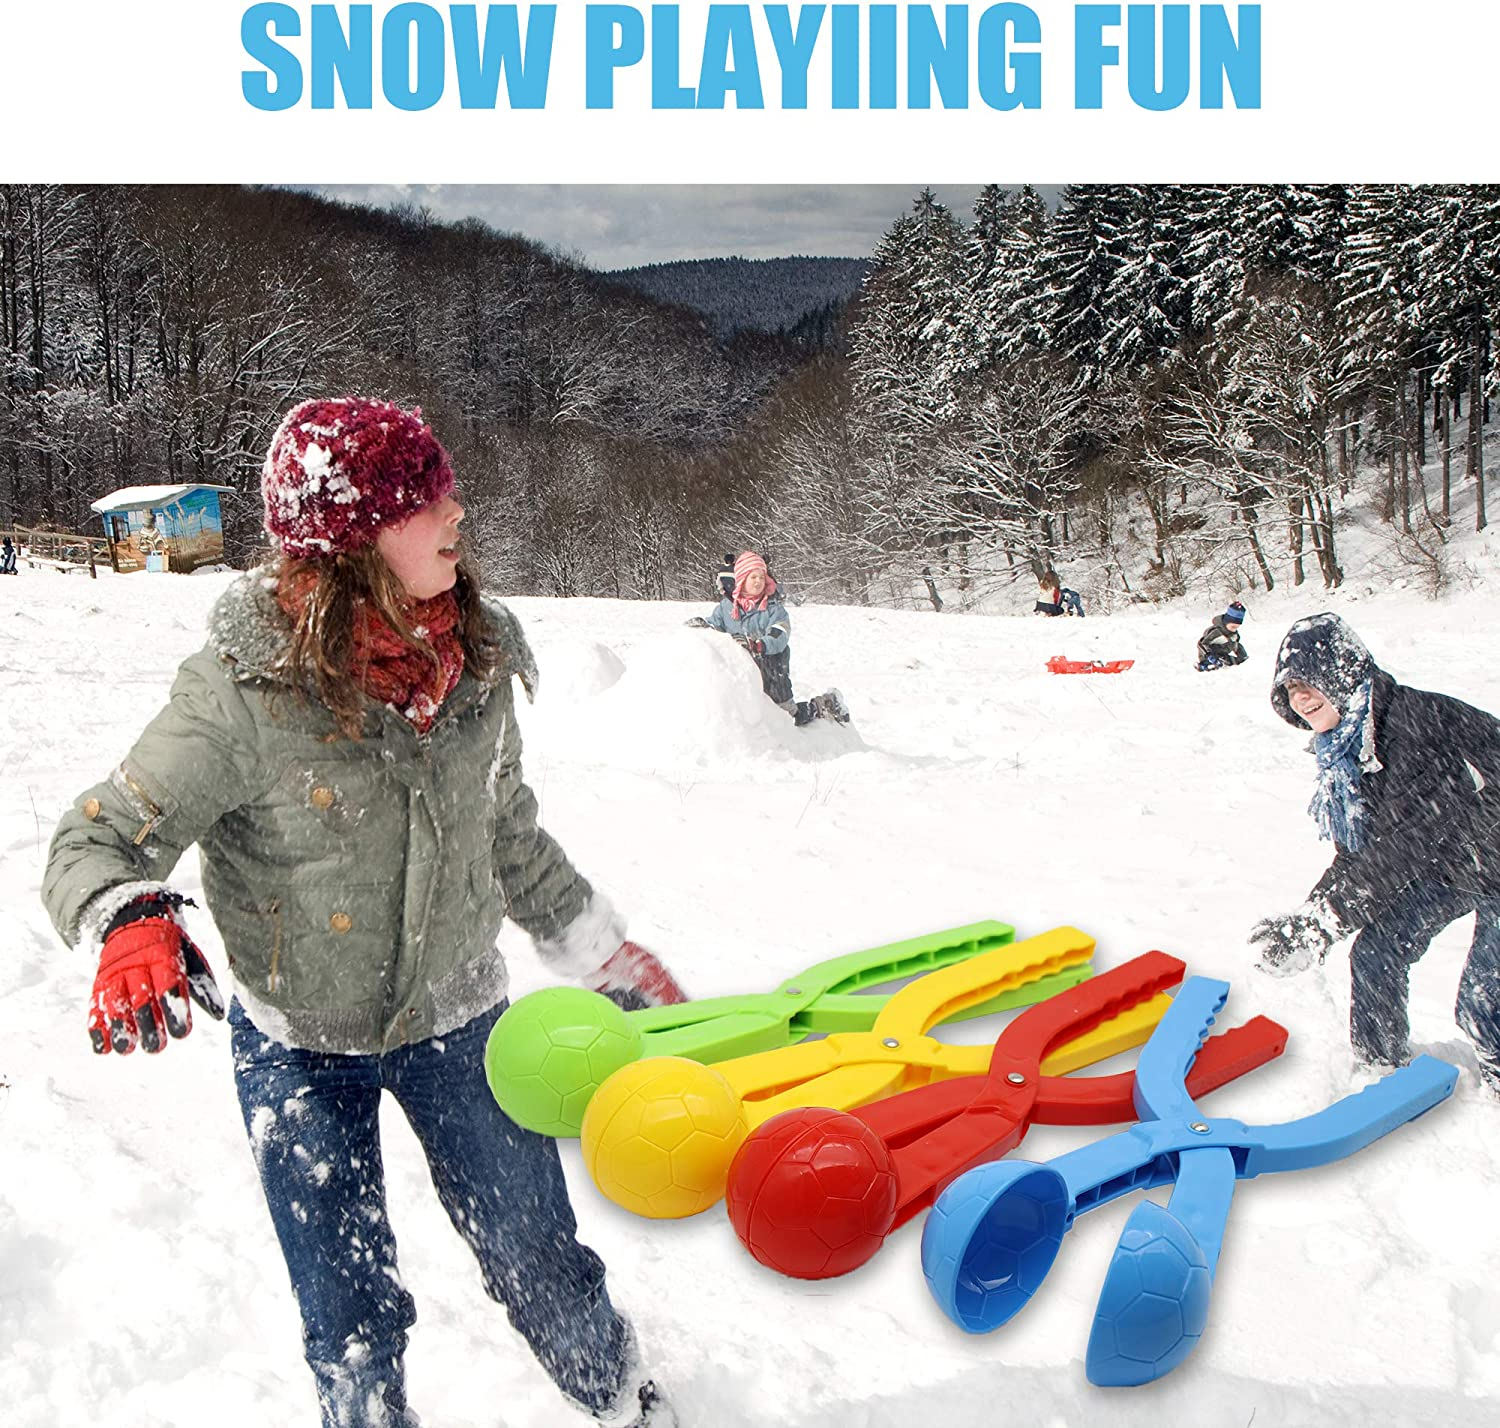 Nirose Snow Ball Clip Snow Games for Kids Snowball Maker 4 Pack Snow Toys for Kids Snow Ball Fights Kids Winter Outdoor Toys